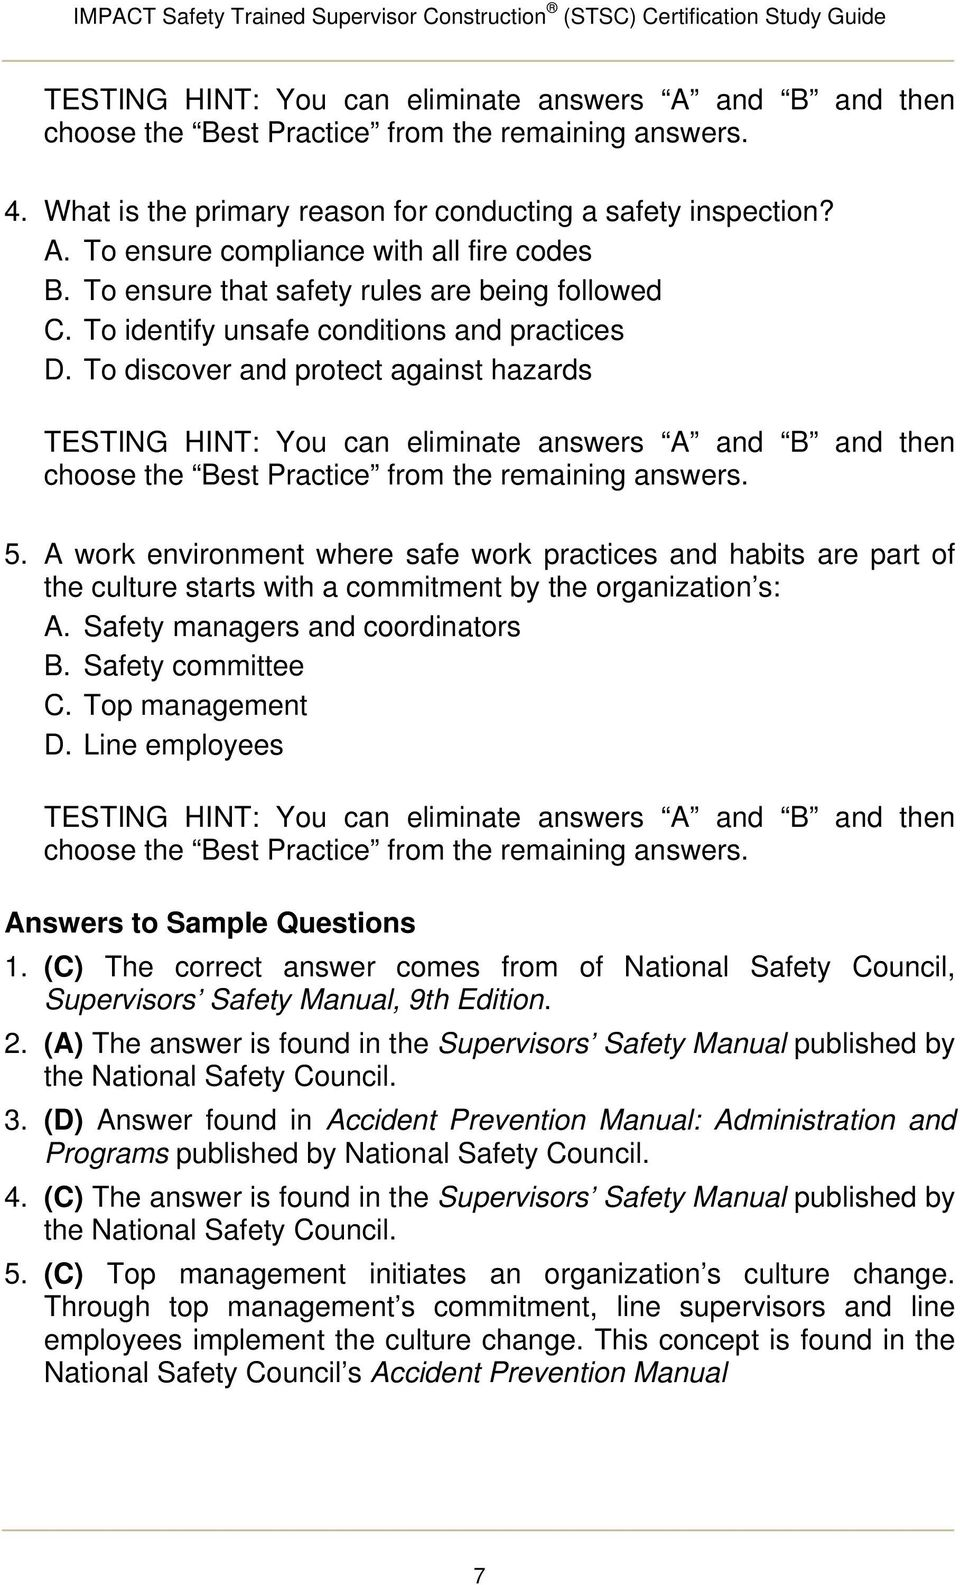 Stsc study guide